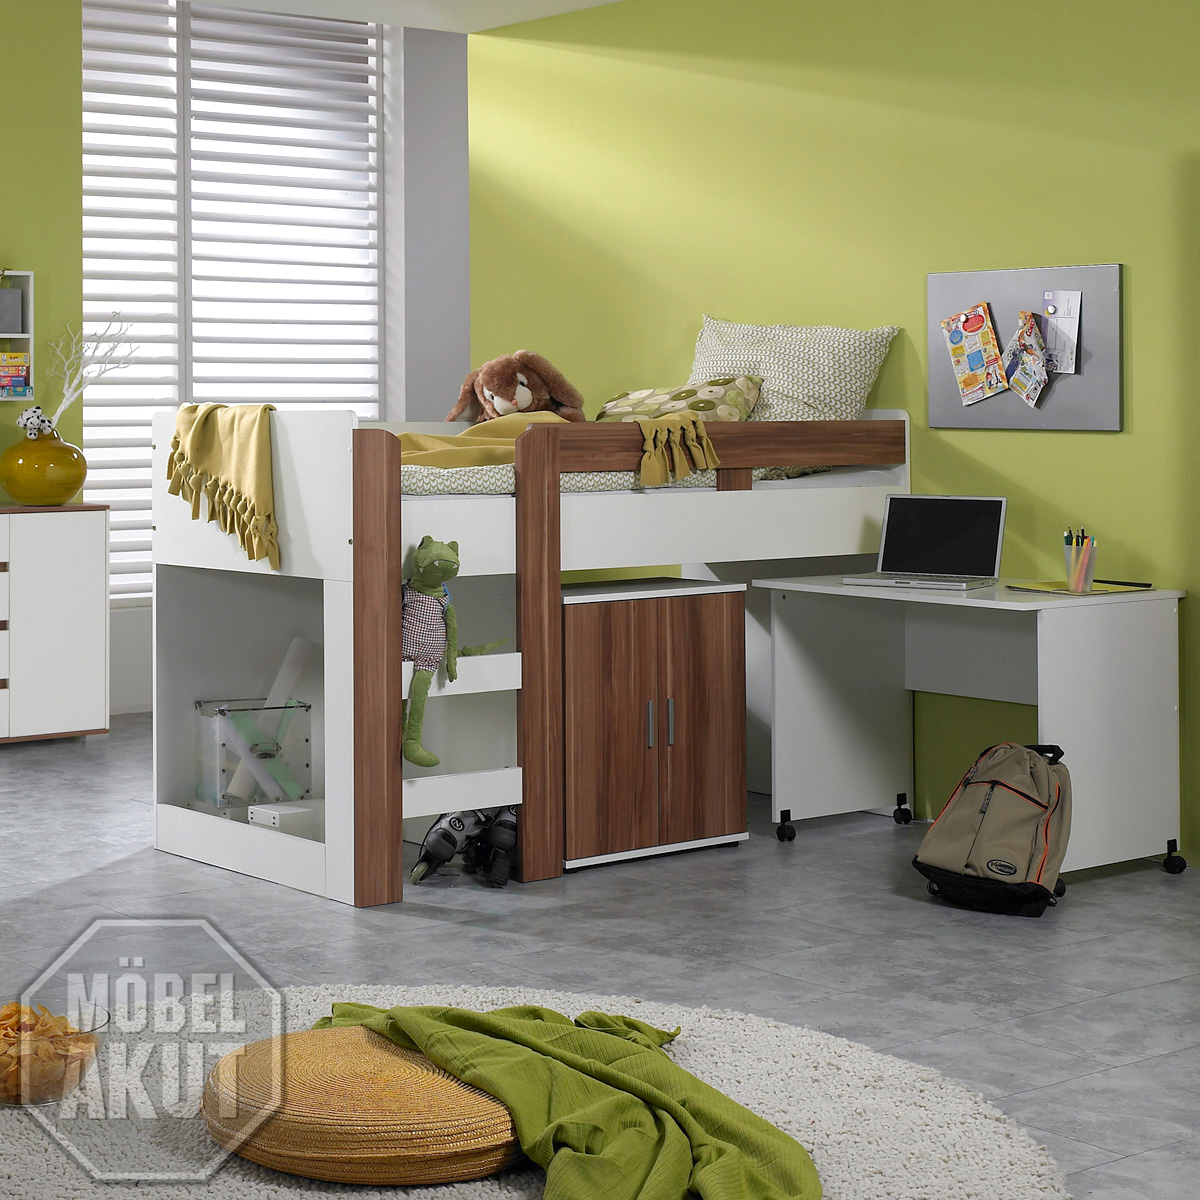 hochbett mit schreibtisch pedro 5 kinderzimmer in weiss und nussbaum ebay. Black Bedroom Furniture Sets. Home Design Ideas